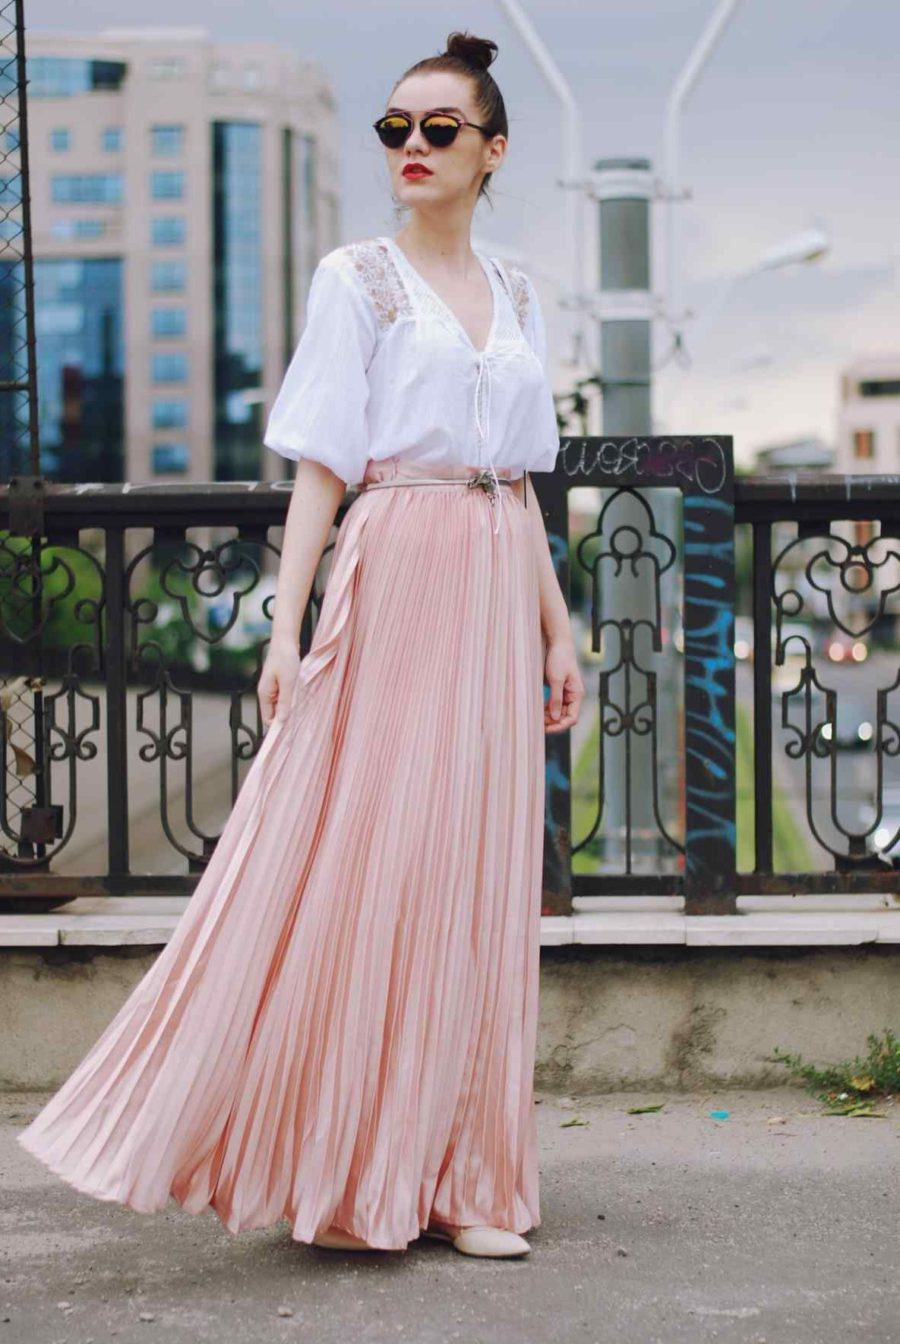 How To Wear Maxi Skirts In 2018 Tips, Looks And Street Style Ideas 2018